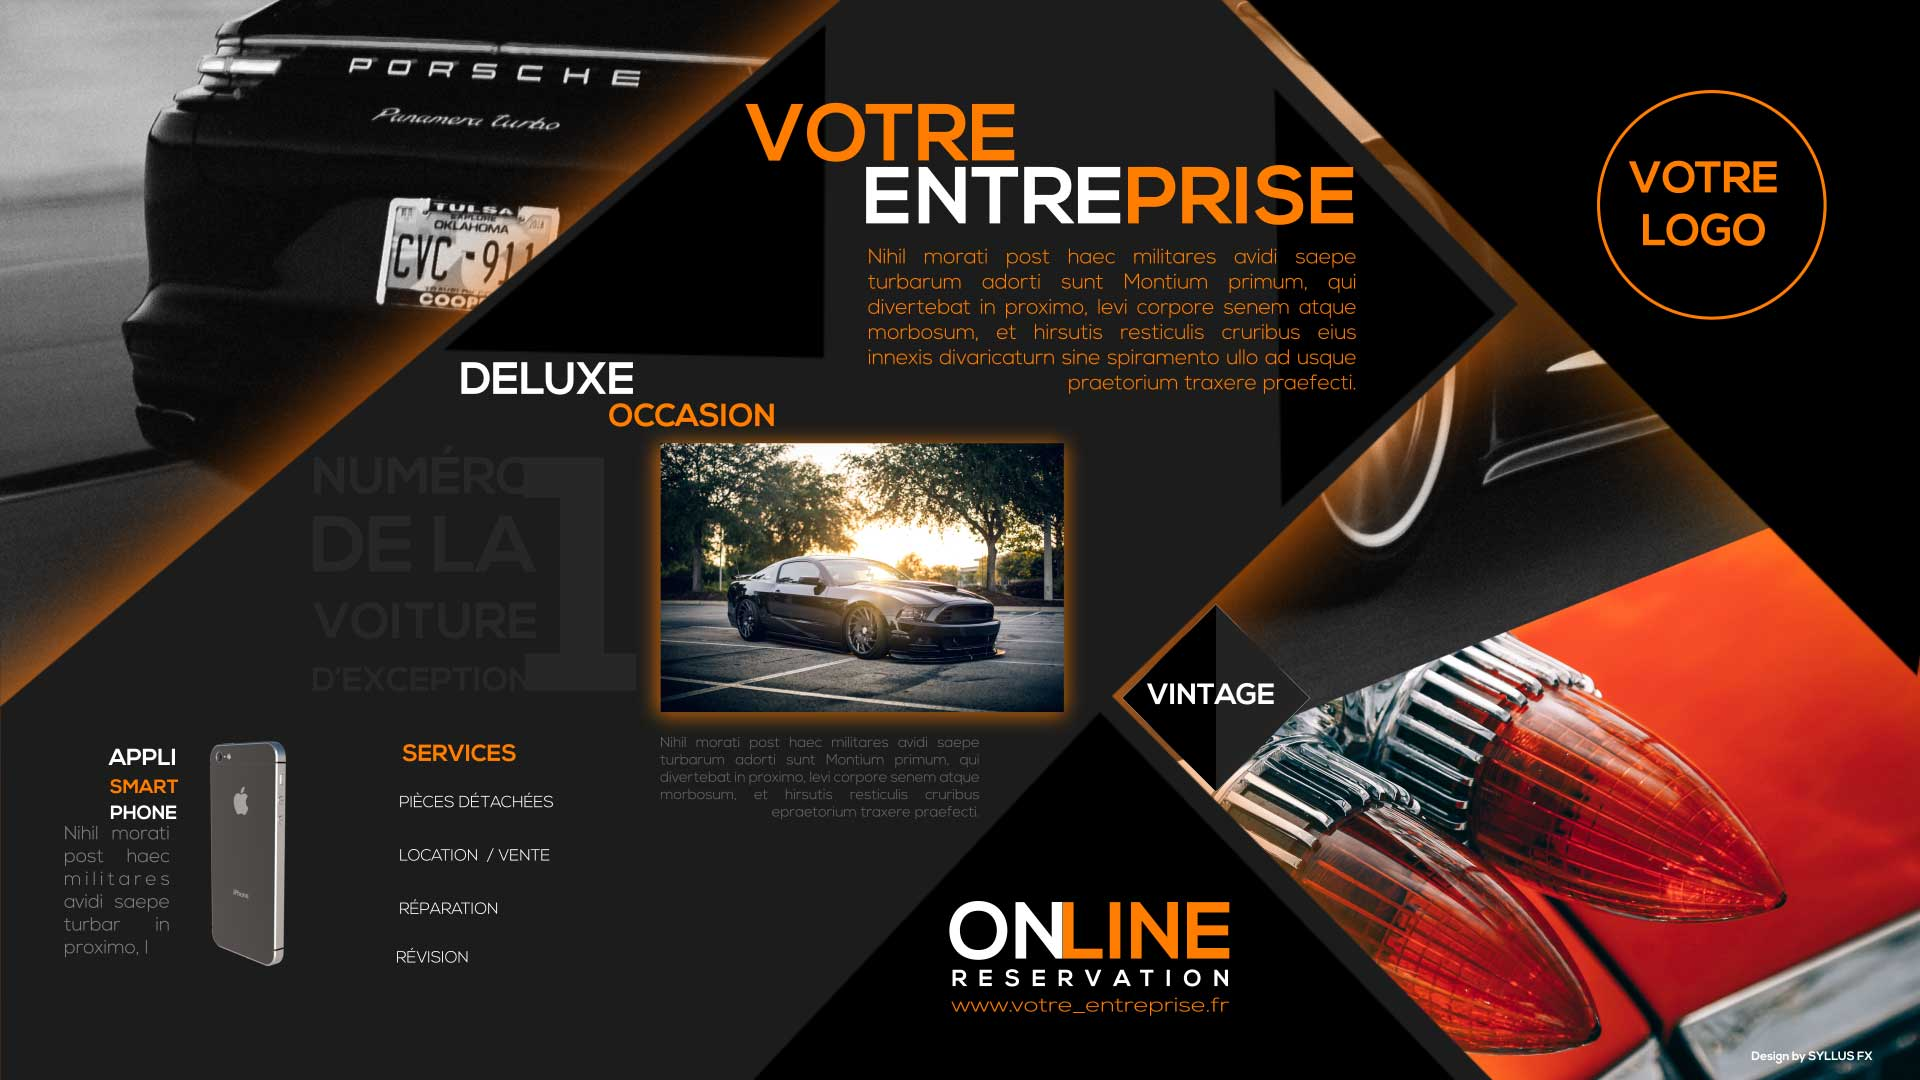 image Template Deluxe occasion paysage 004F